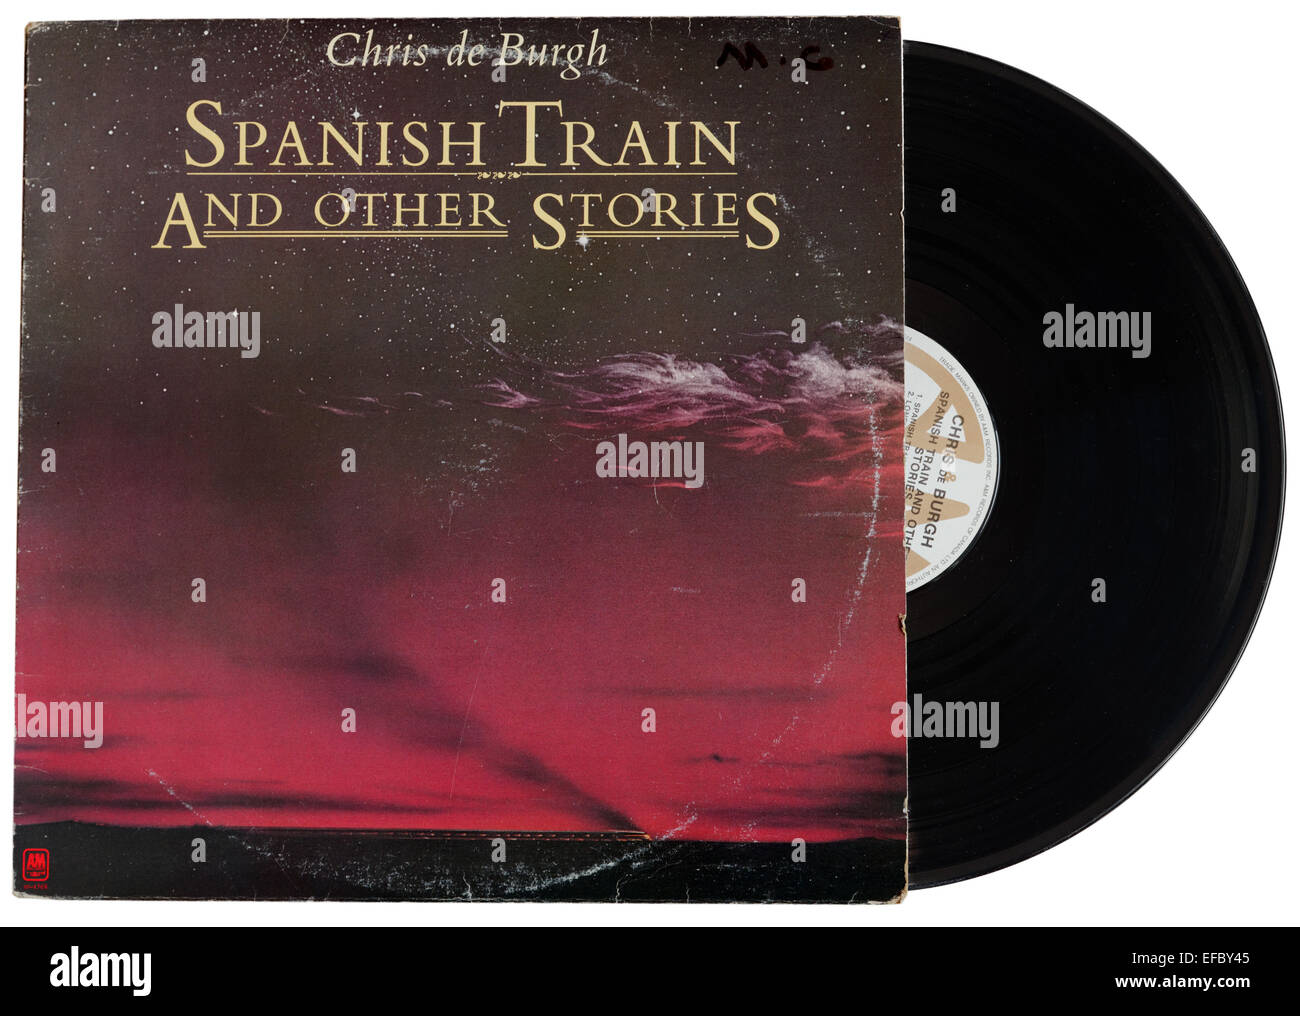 Spanish Train and Other Stories album by Chris de Burgh - Stock Image